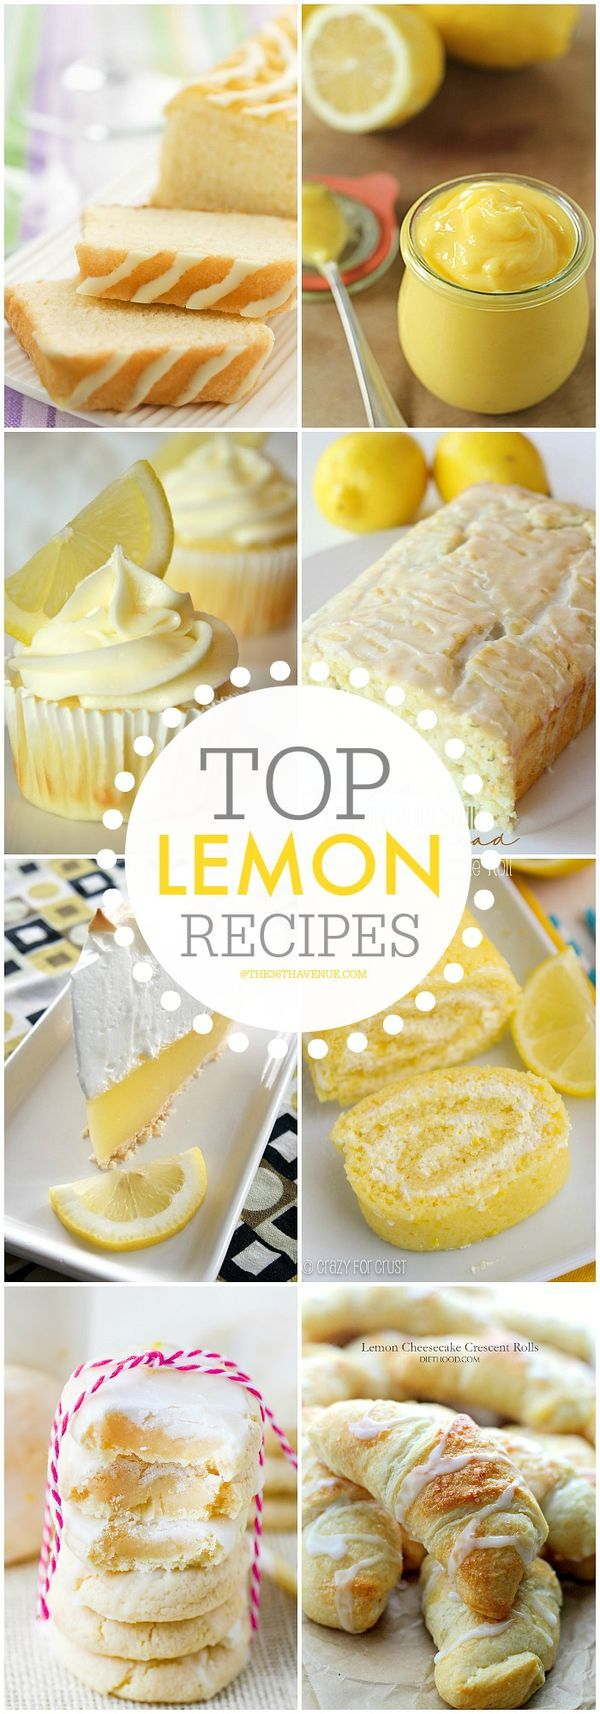 Best Lemon Recipes at the36thavenue.com Pin it now and make them later! #coniefox #2016prom